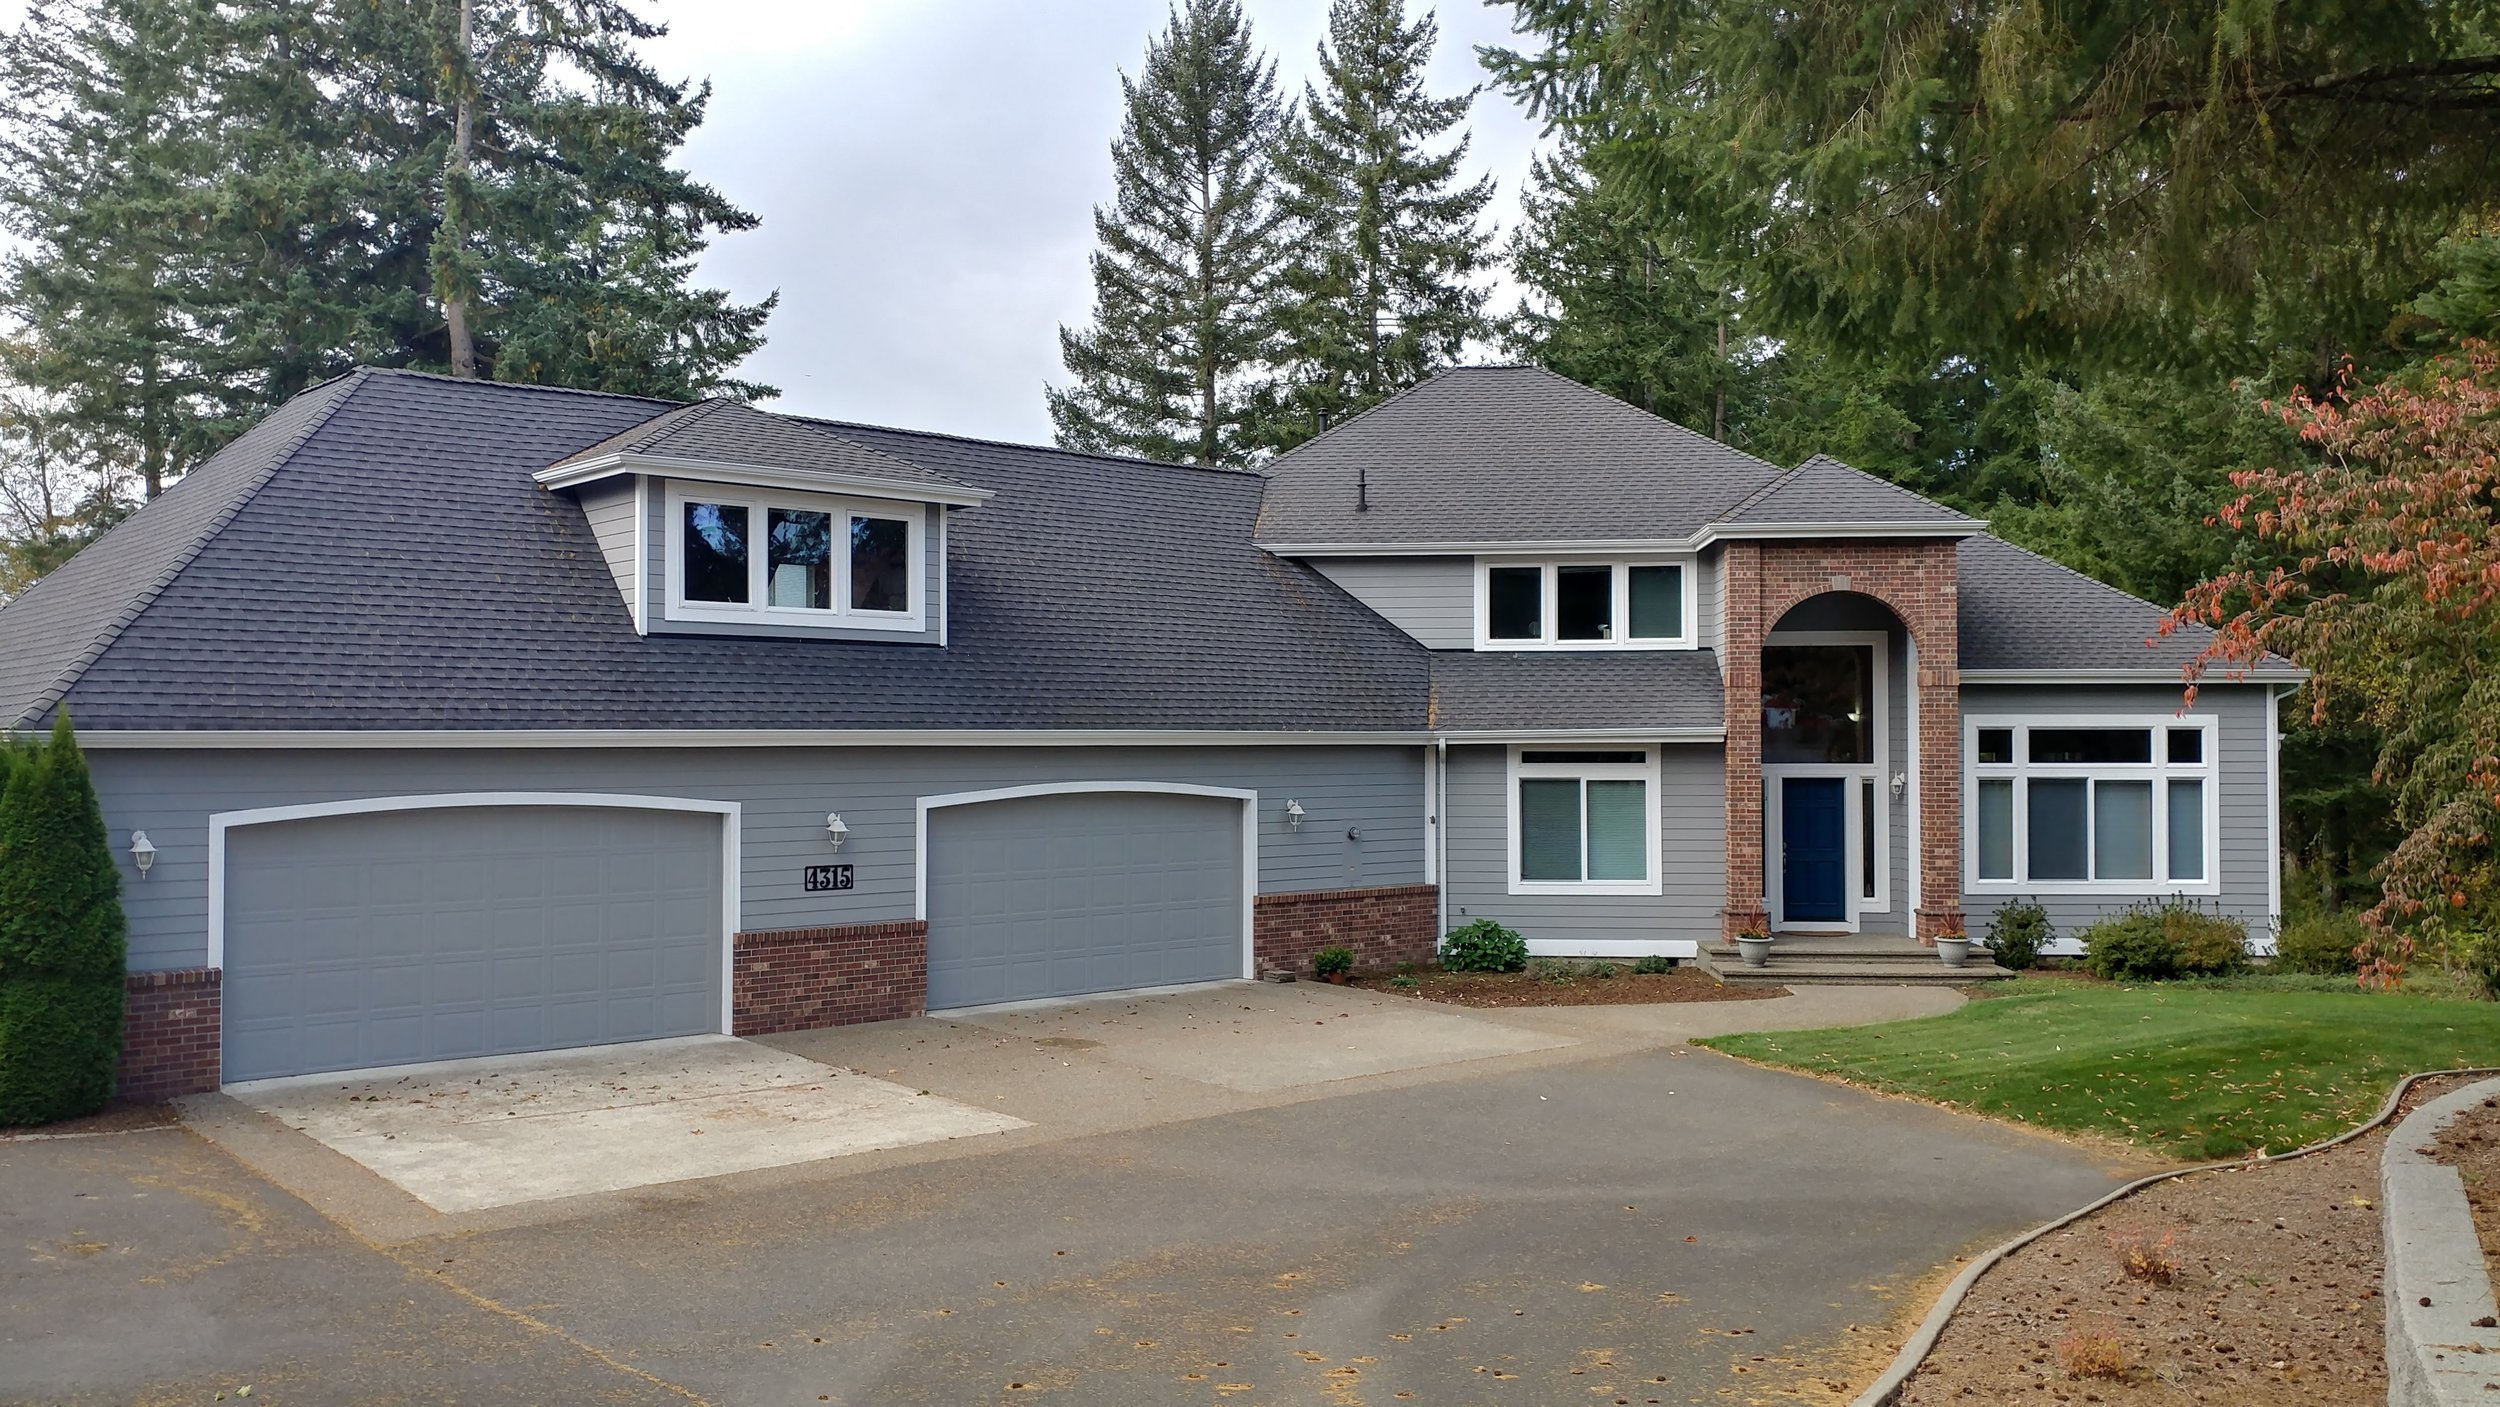 - 3000 - 4000 sq. ft. home is likely to cost$6,500-$8,000